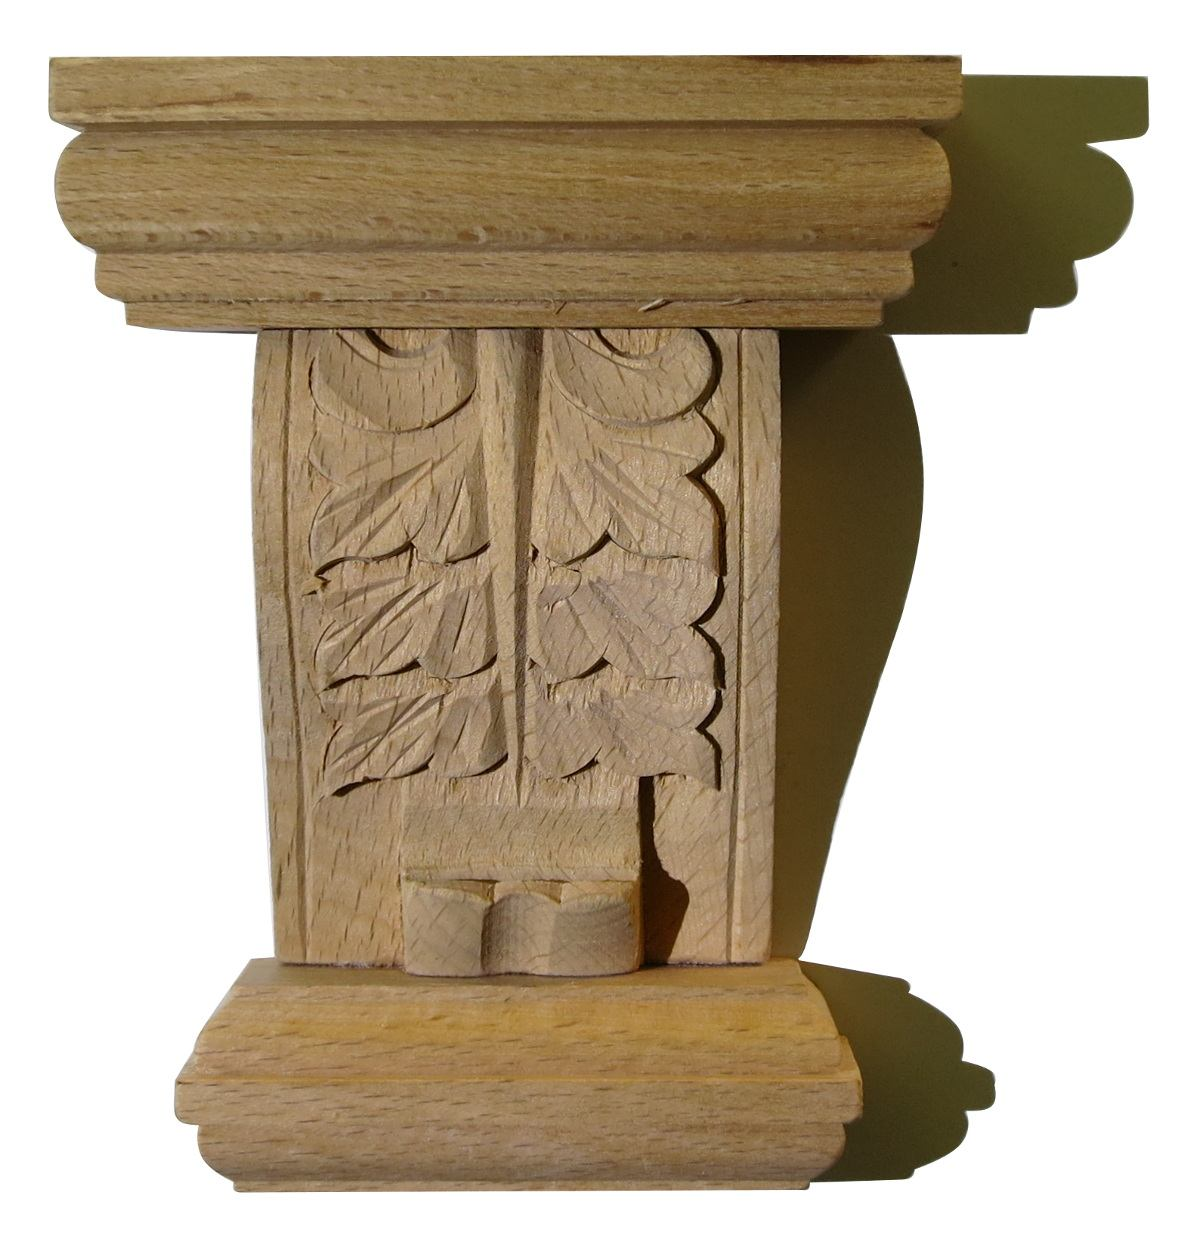 Carving for cabinetmaker made to measure wood appliques